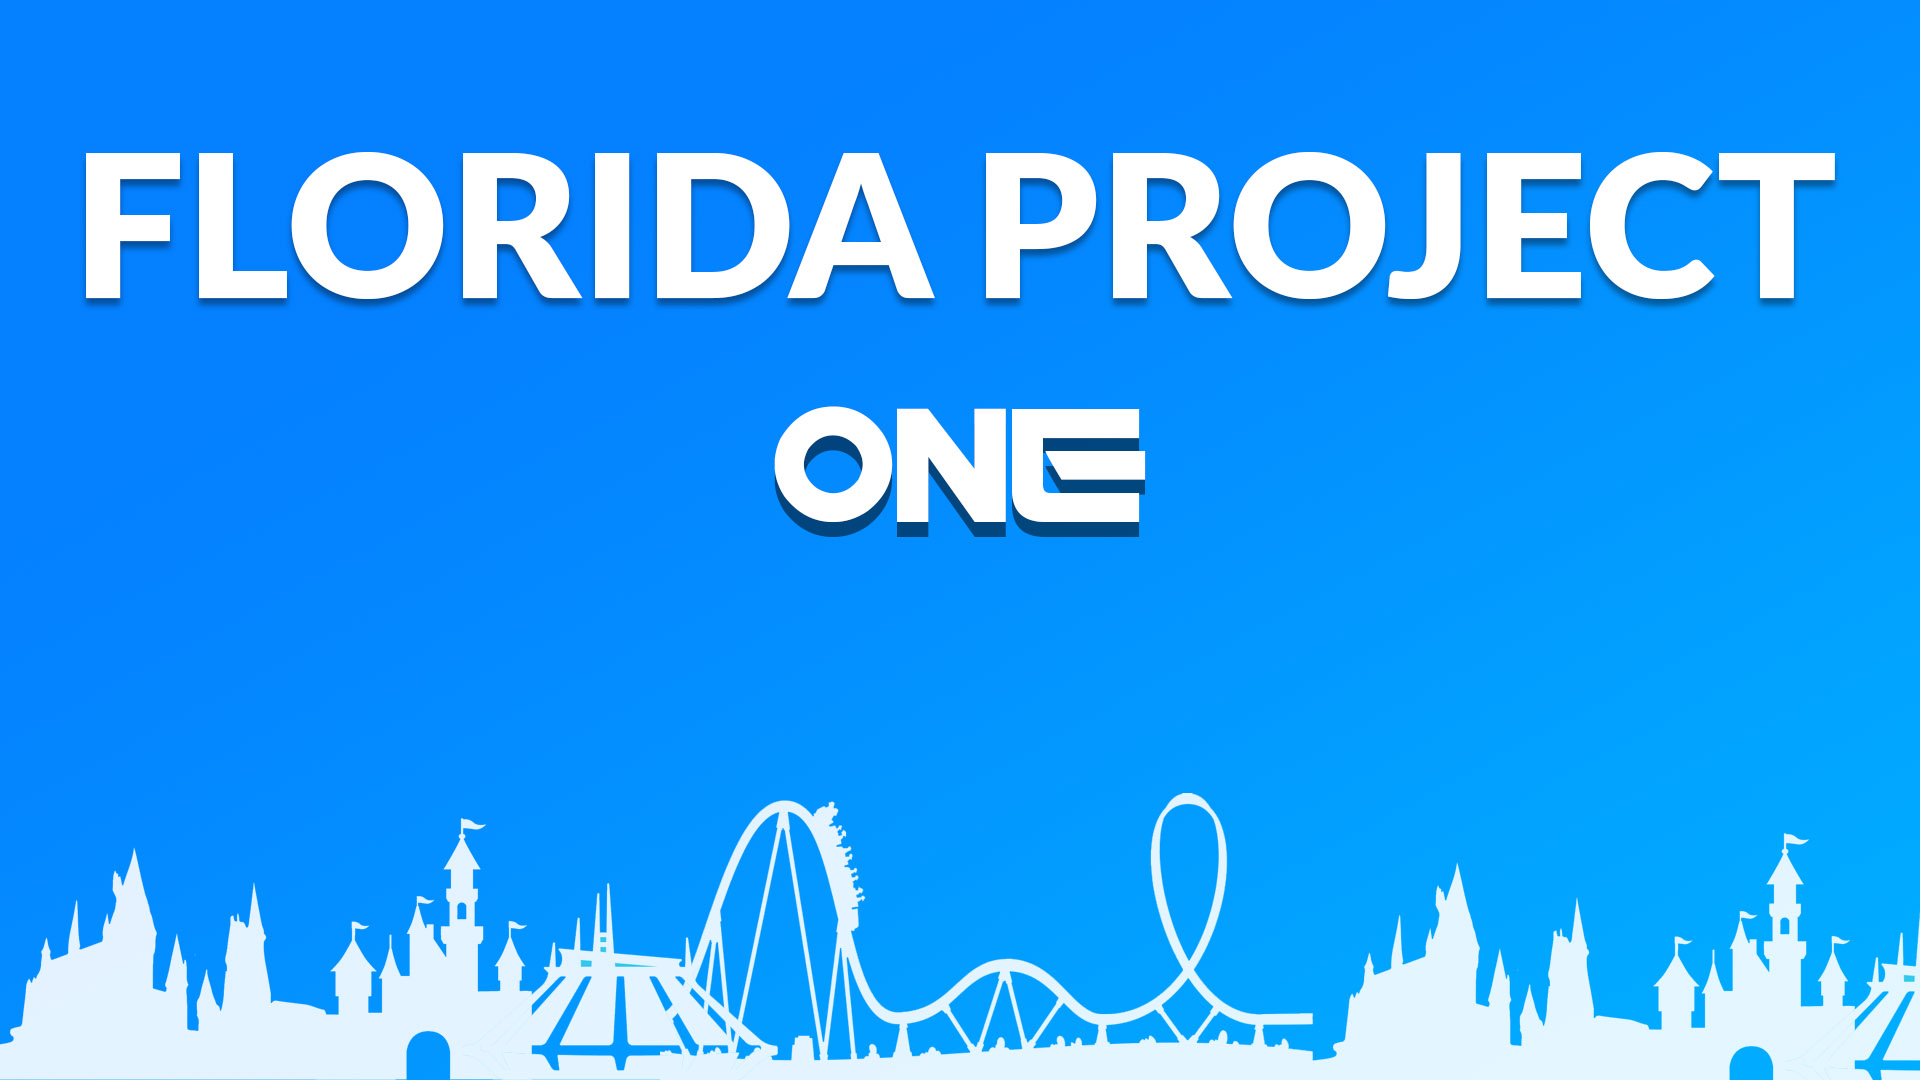 FLORIDA PROJECT ONE